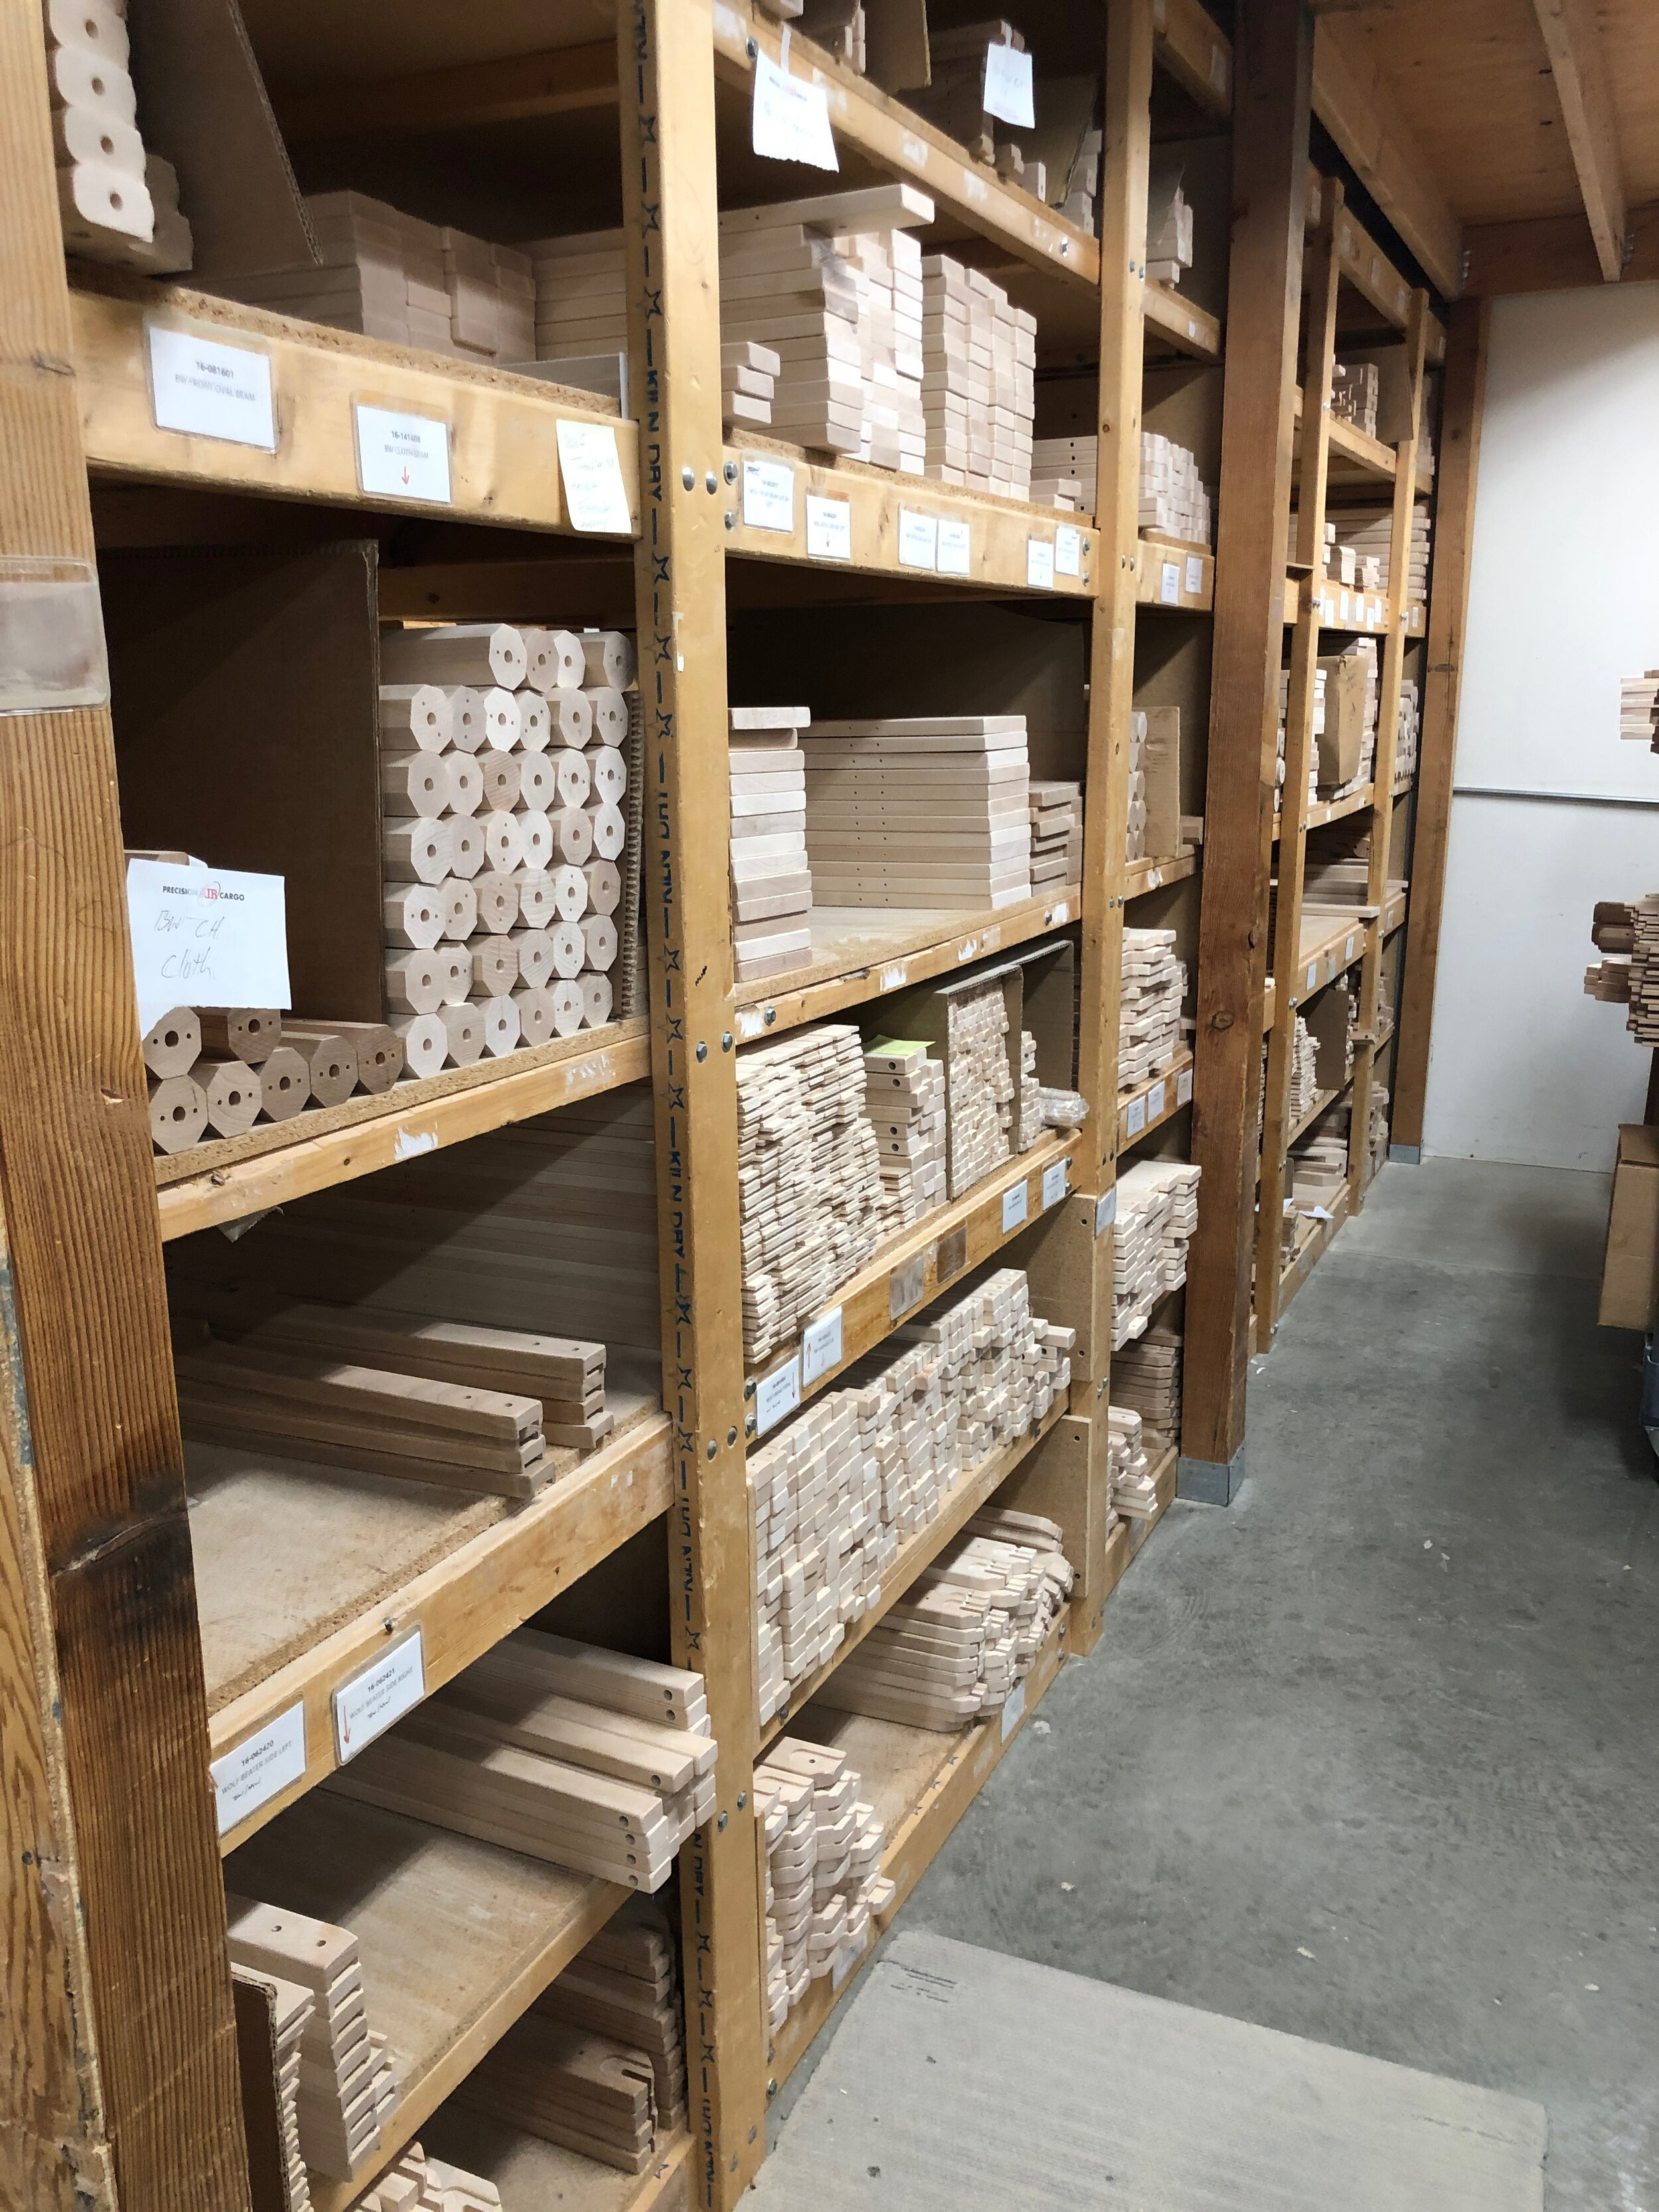 Shelves in a storeroom for un-assembled parts.  Celebrating Schacht's 50th Anniversary || withwool.com  #schacht50years